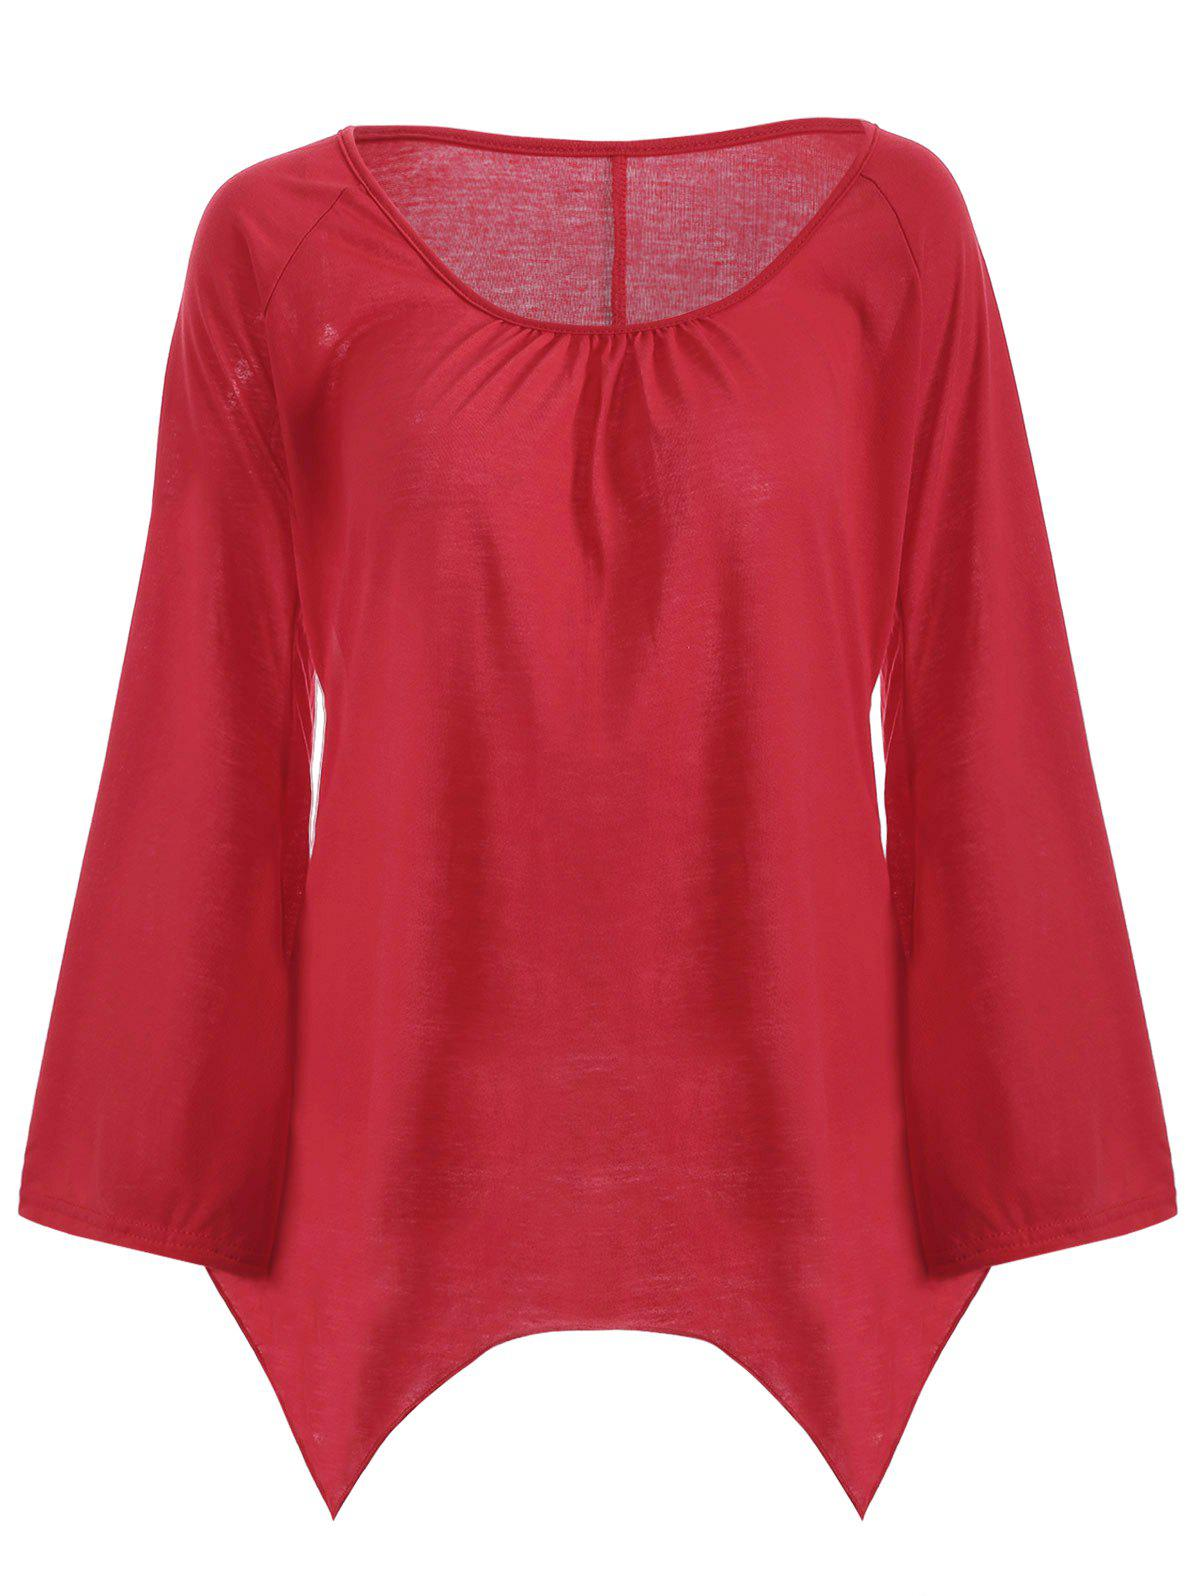 Bell Sleeve Asymmetric Top - RED L